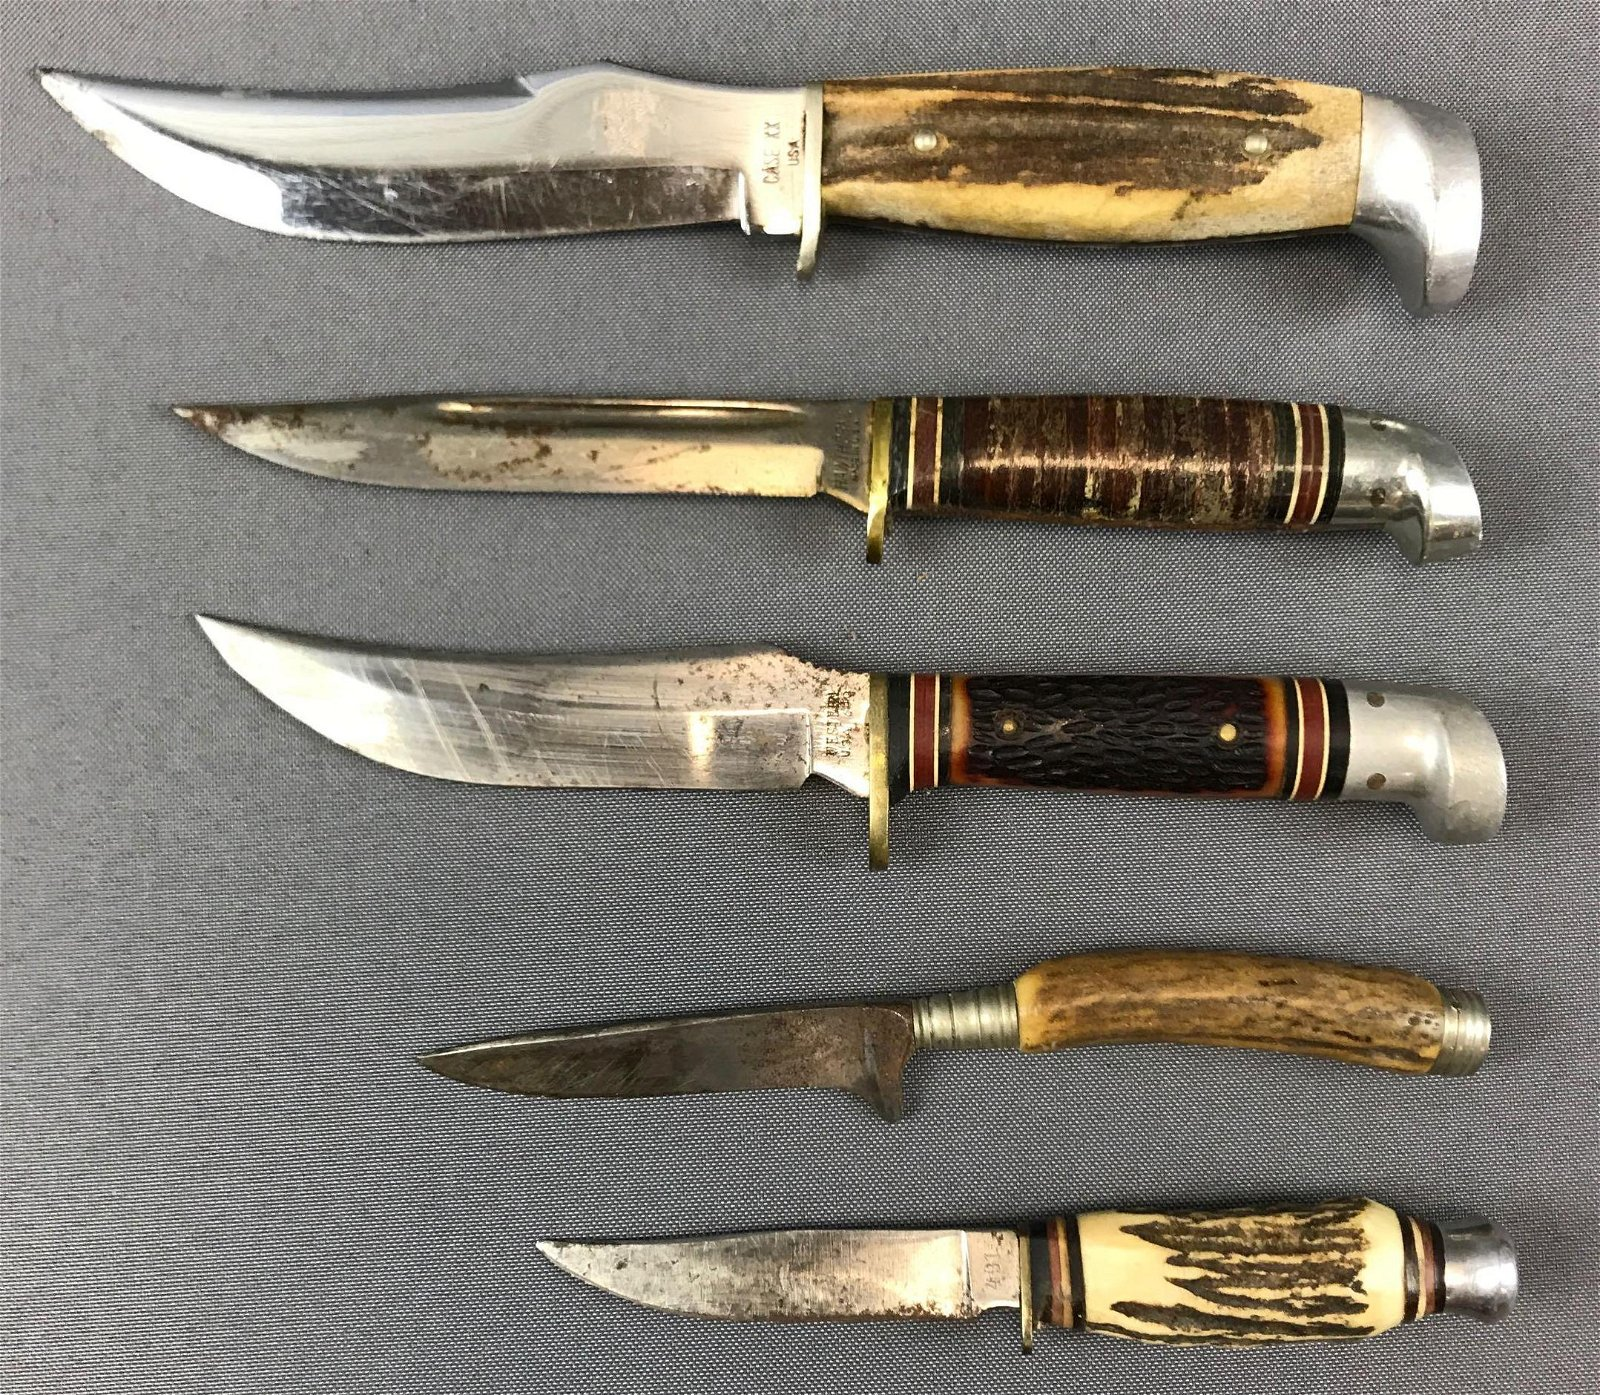 Group of 5 : Vintage Fixed Blade Knives